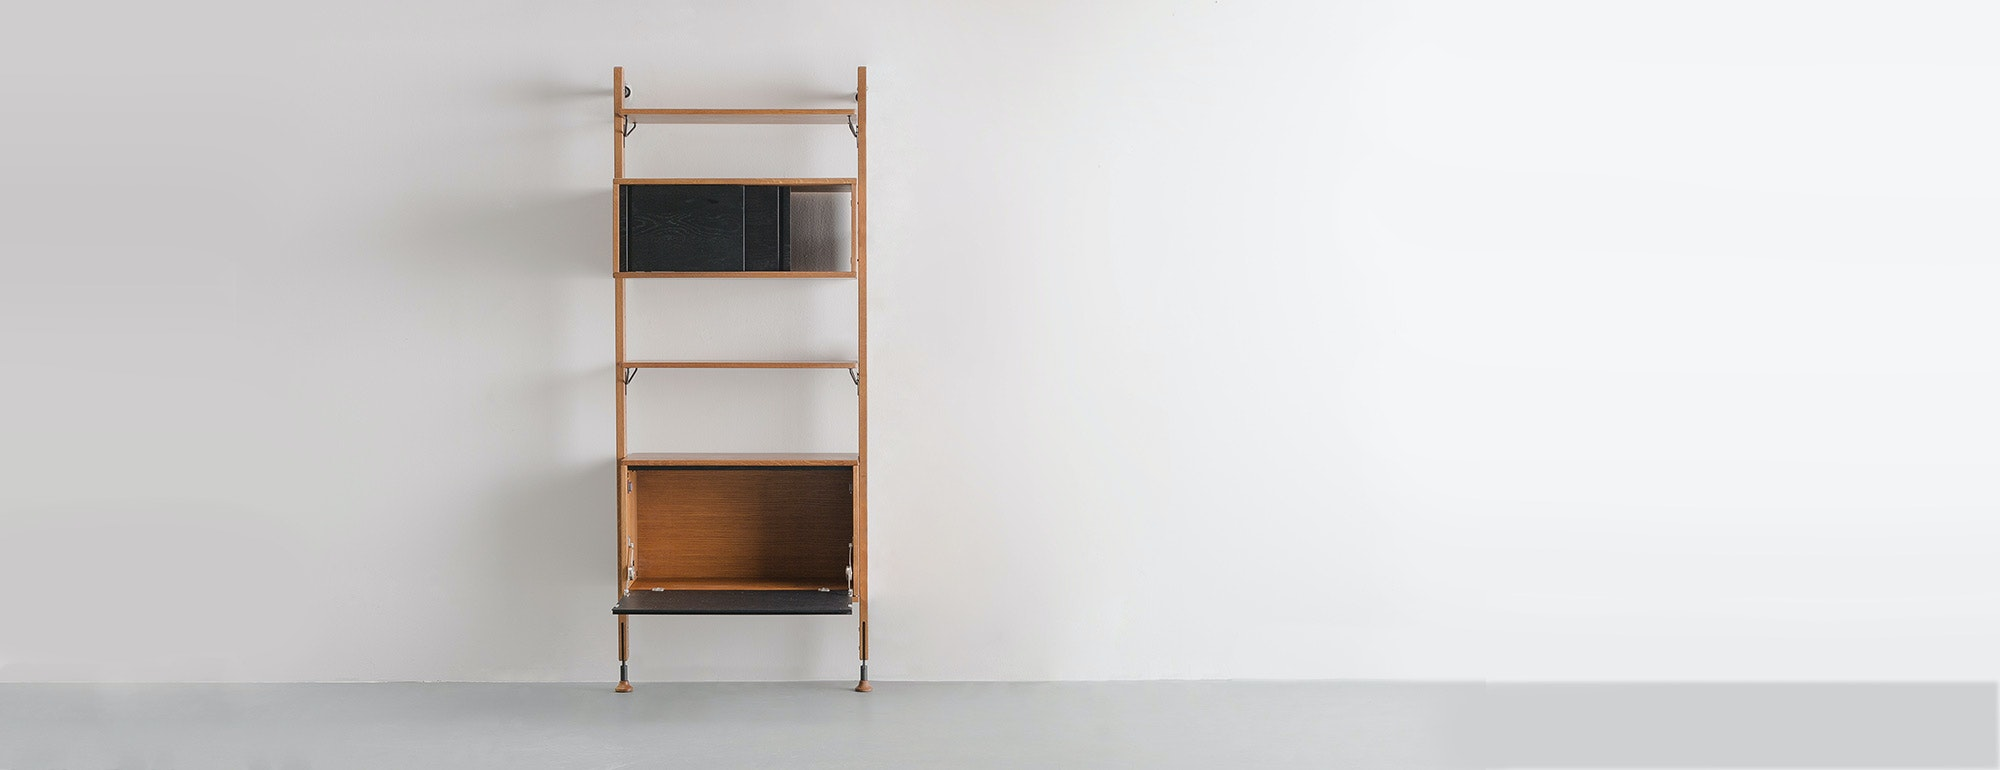 + Quick View · Dexter Modular Shelf With Cabinet